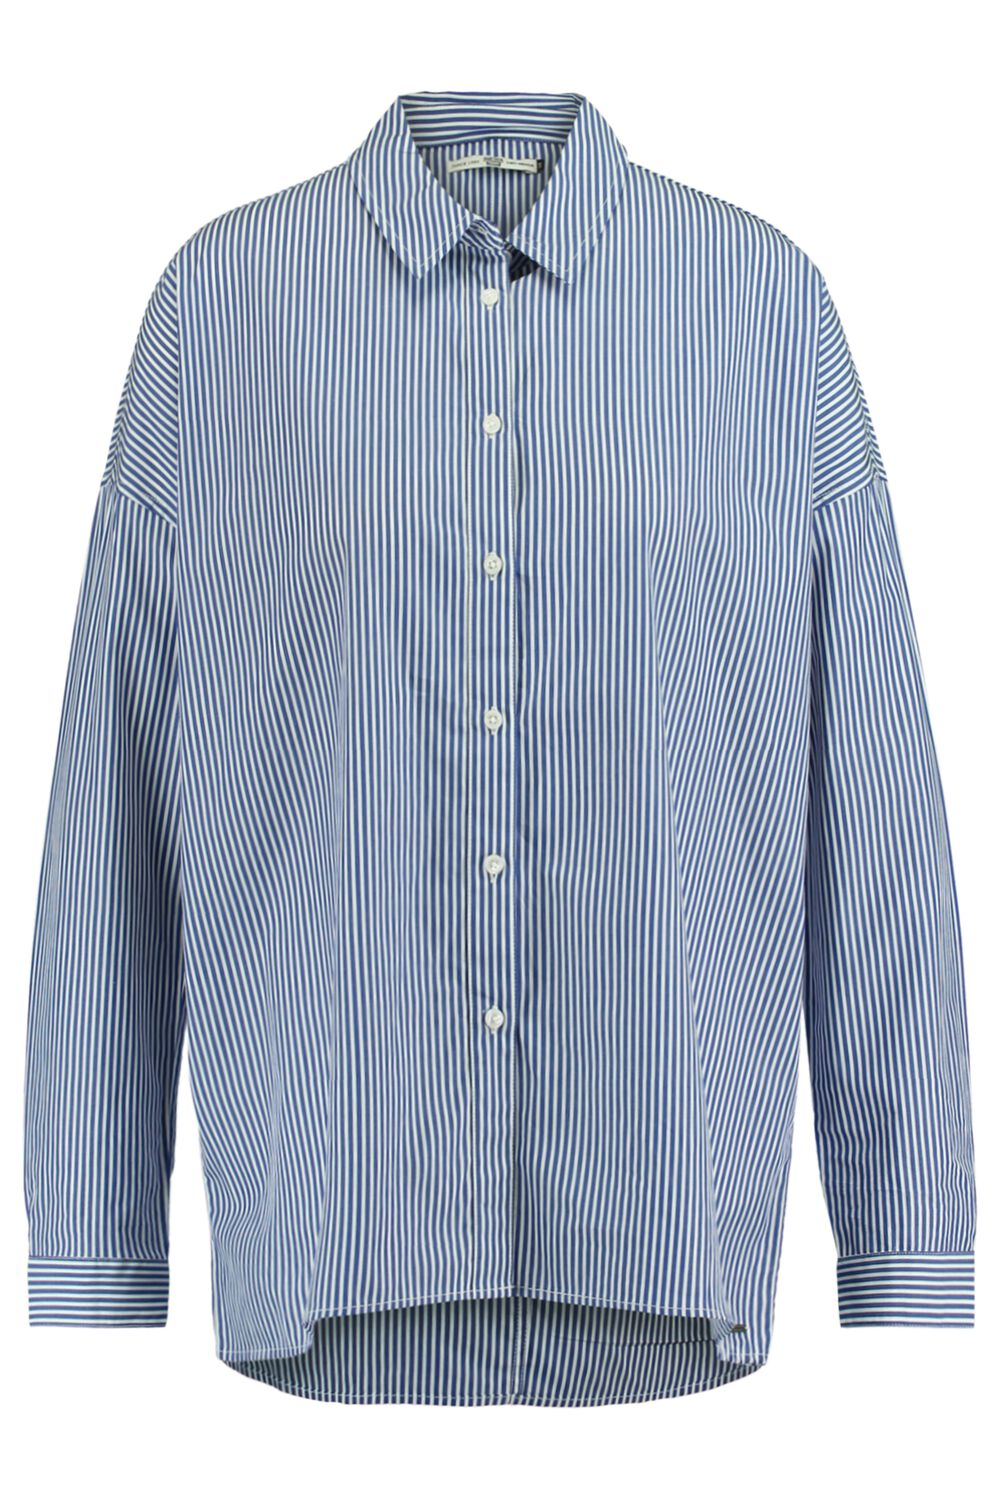 America Today Dames Blouse Brooke Blauw